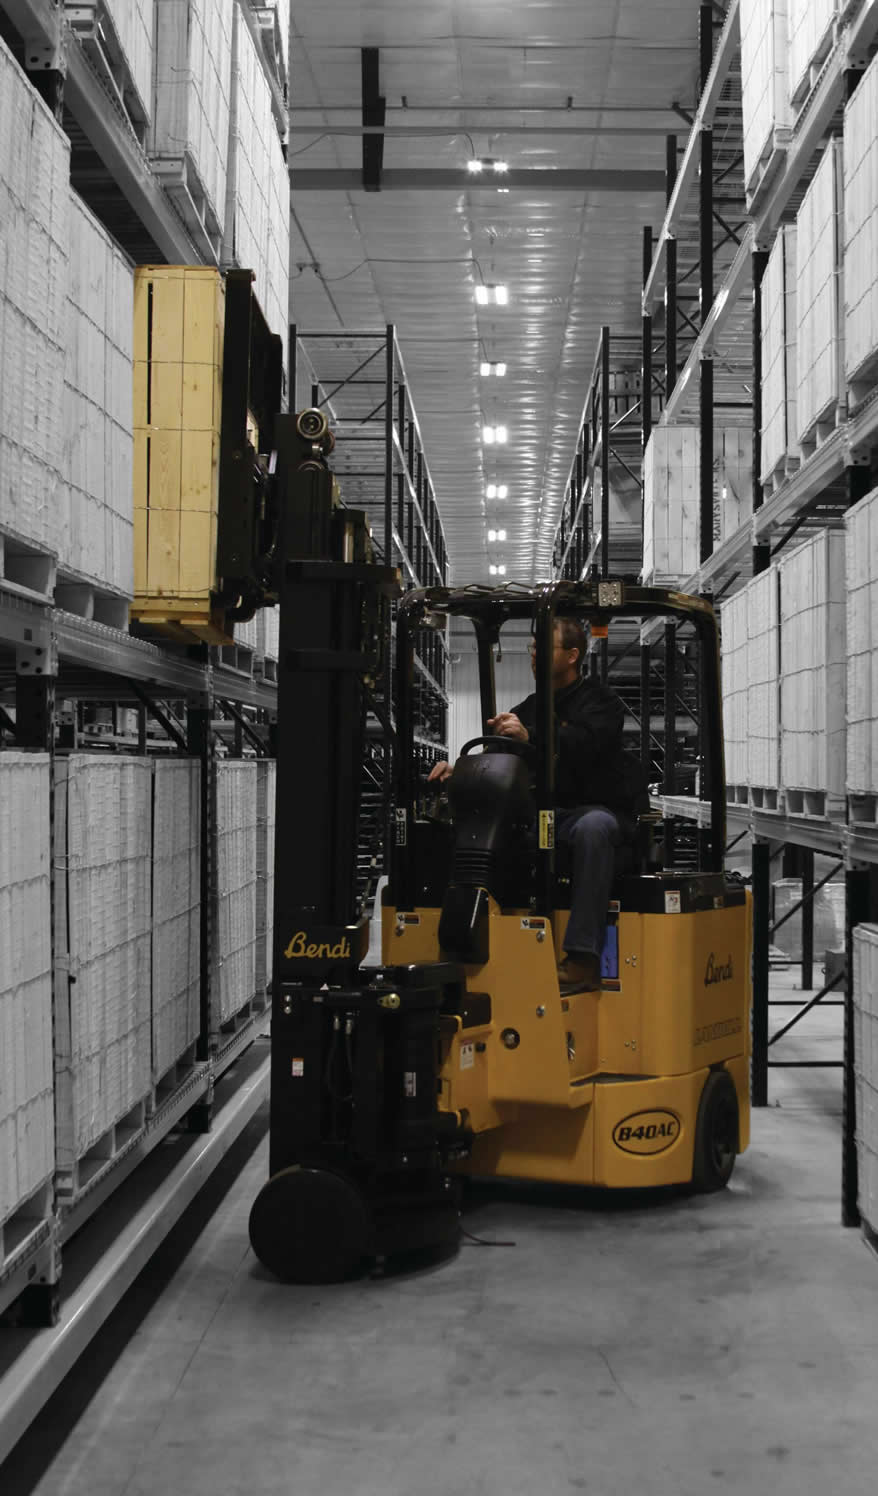 Bendi Articulated Forklifts